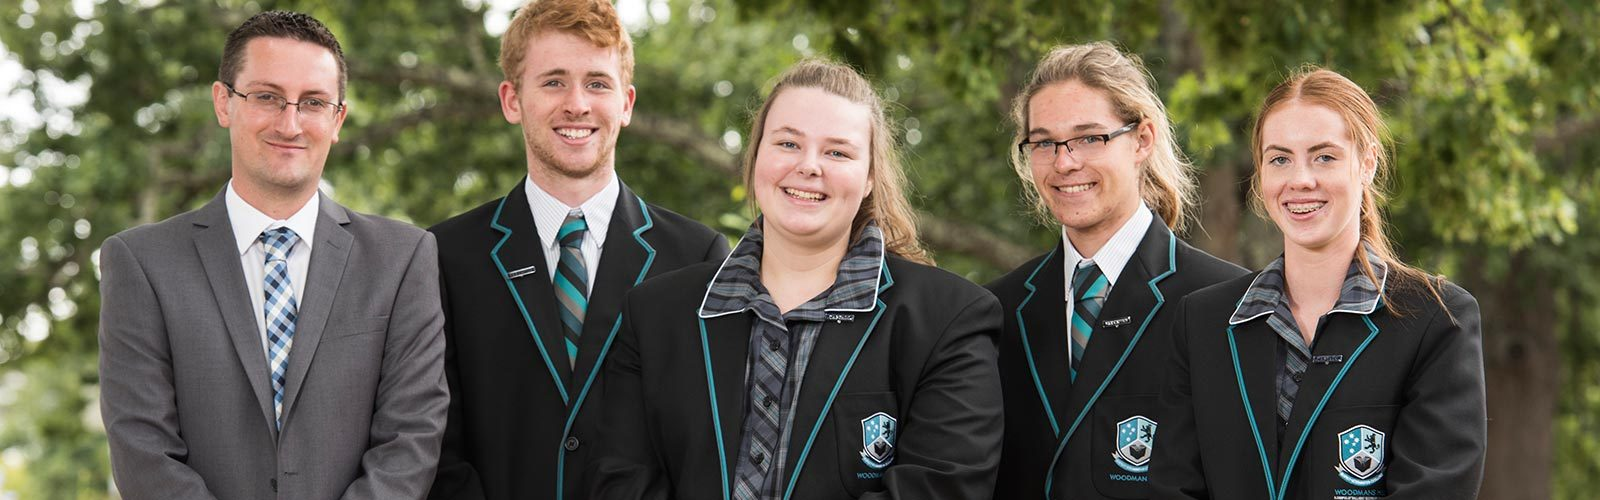 2019 Year 7 applications now open